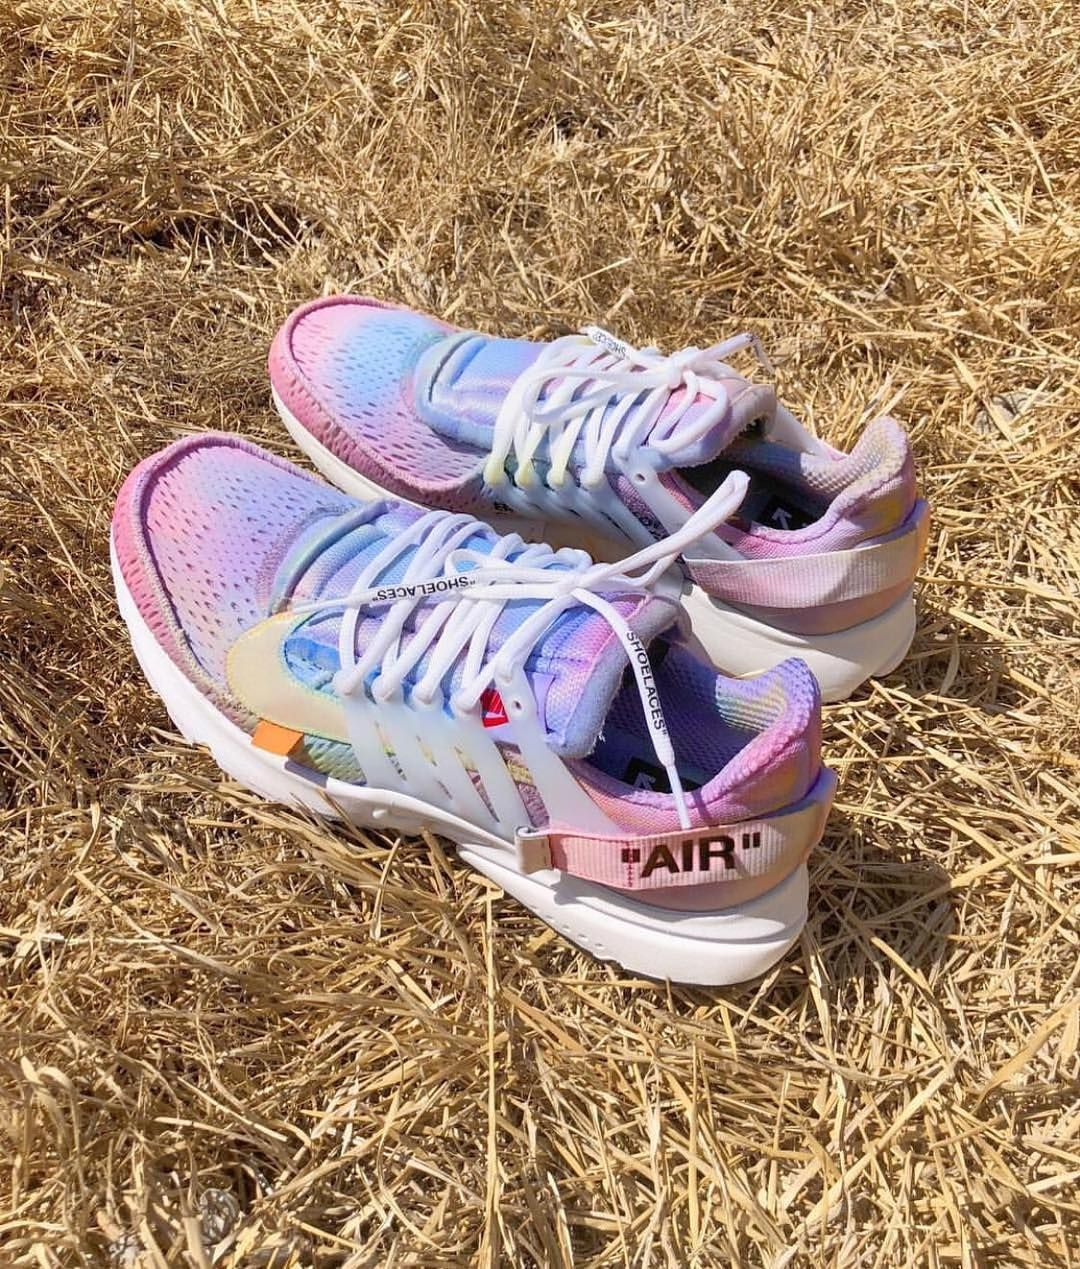 Off White X Nike Presto Custom By Johnmayer Nike P White Nikes Sneakers Nike Air Presto